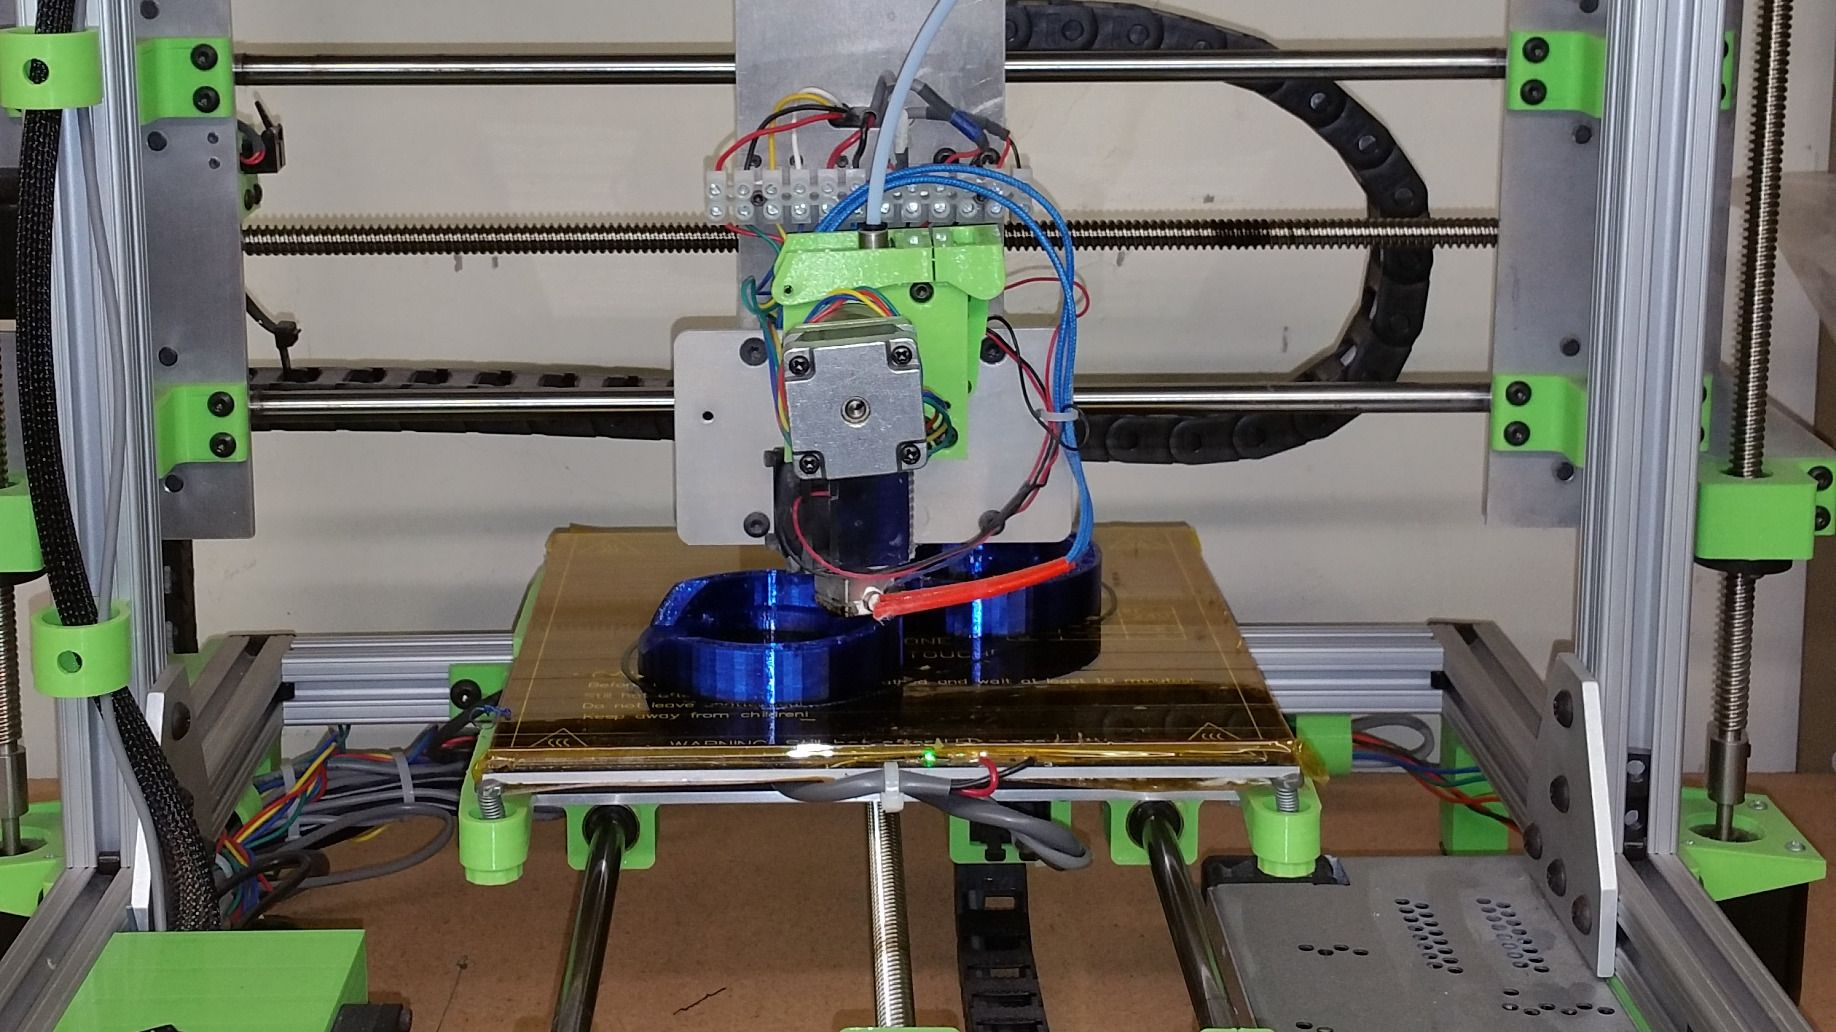 Online PIC Programming, OpenSCAD, KiCad and All things Embedded